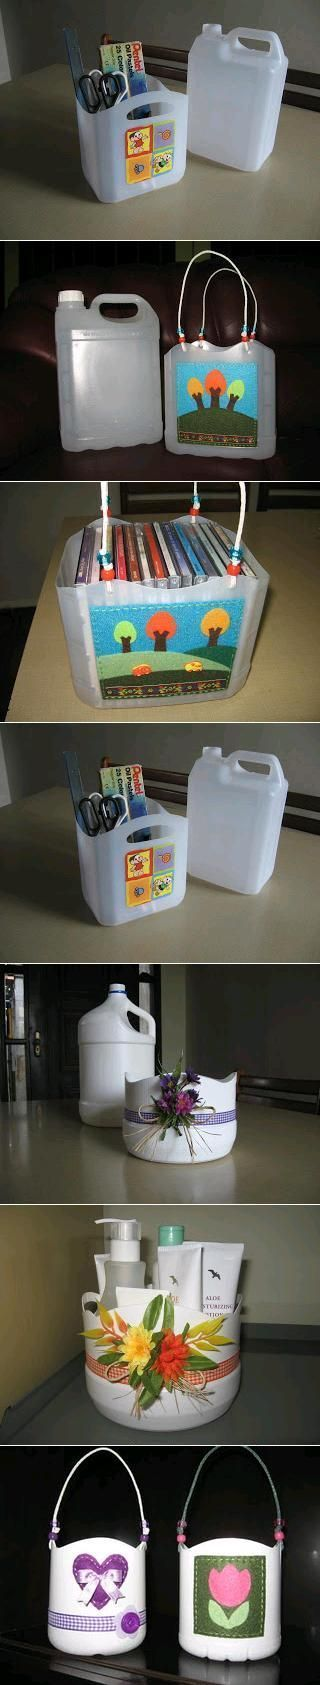 DIY Plastic Bottle Baskets DIY Projects / UsefulDIY.com on imgfave